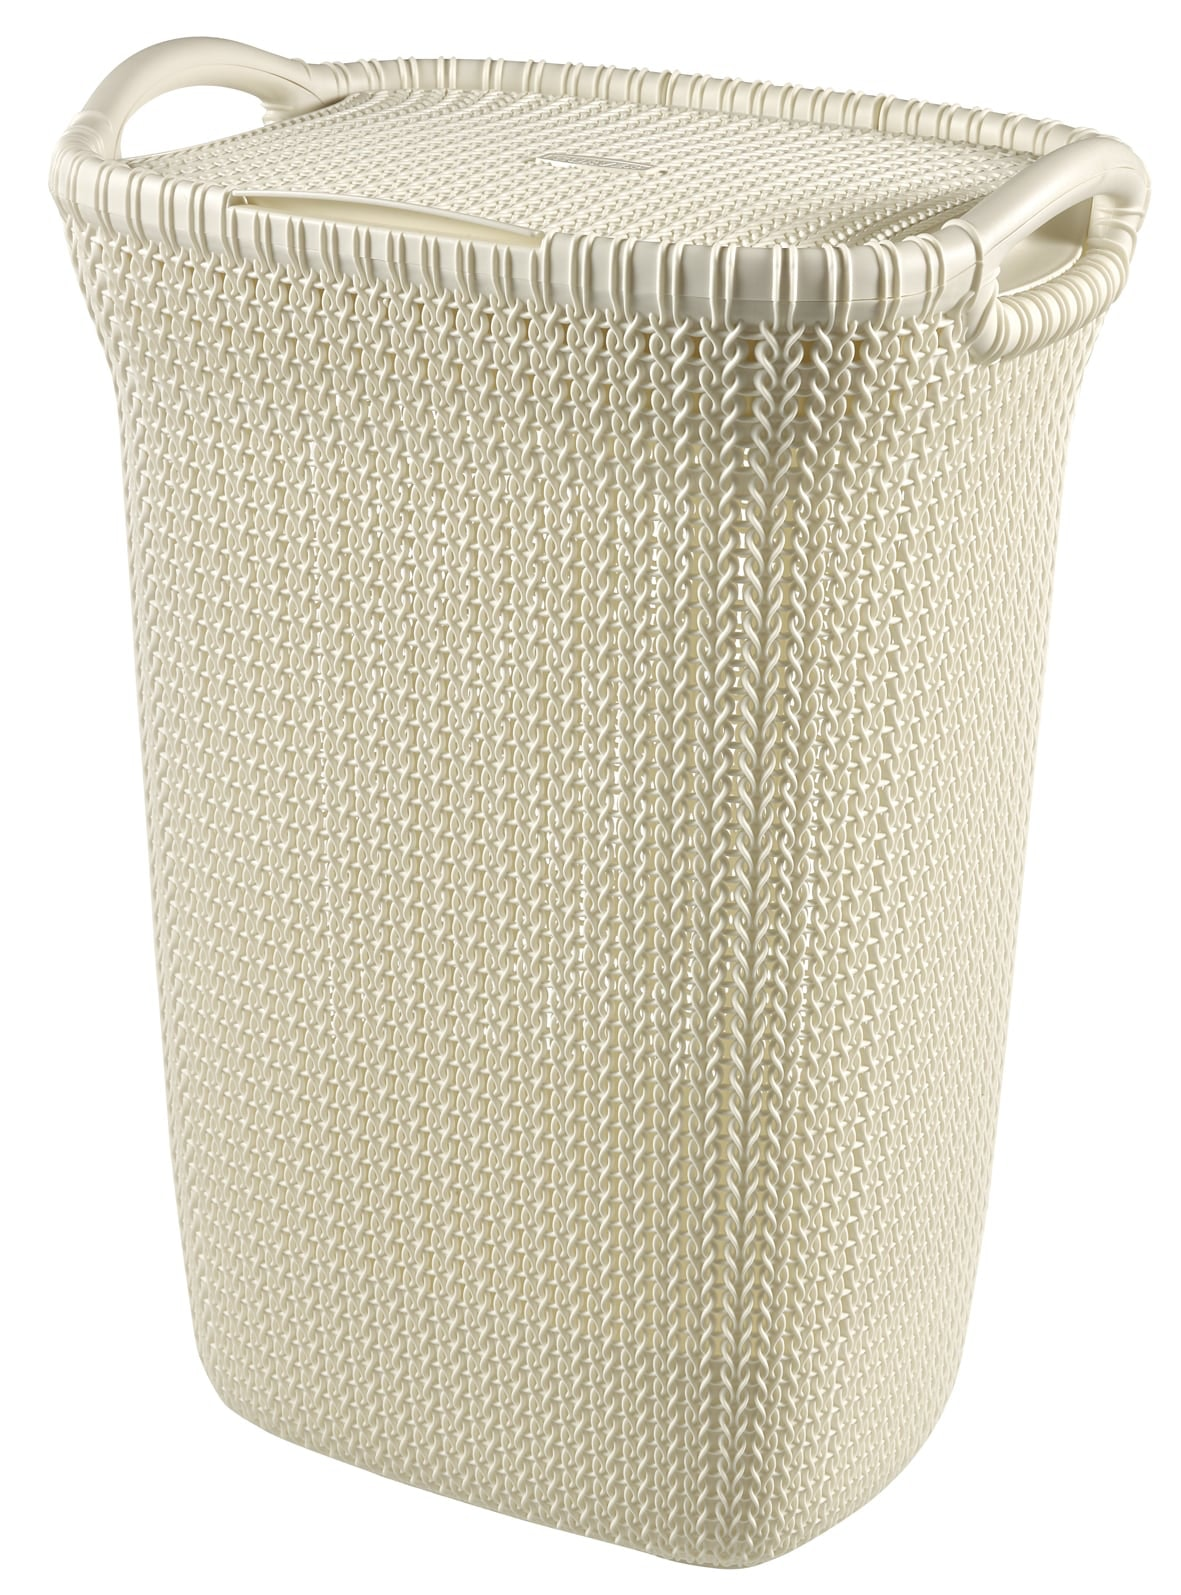 Curver Knit wasbox oasis white